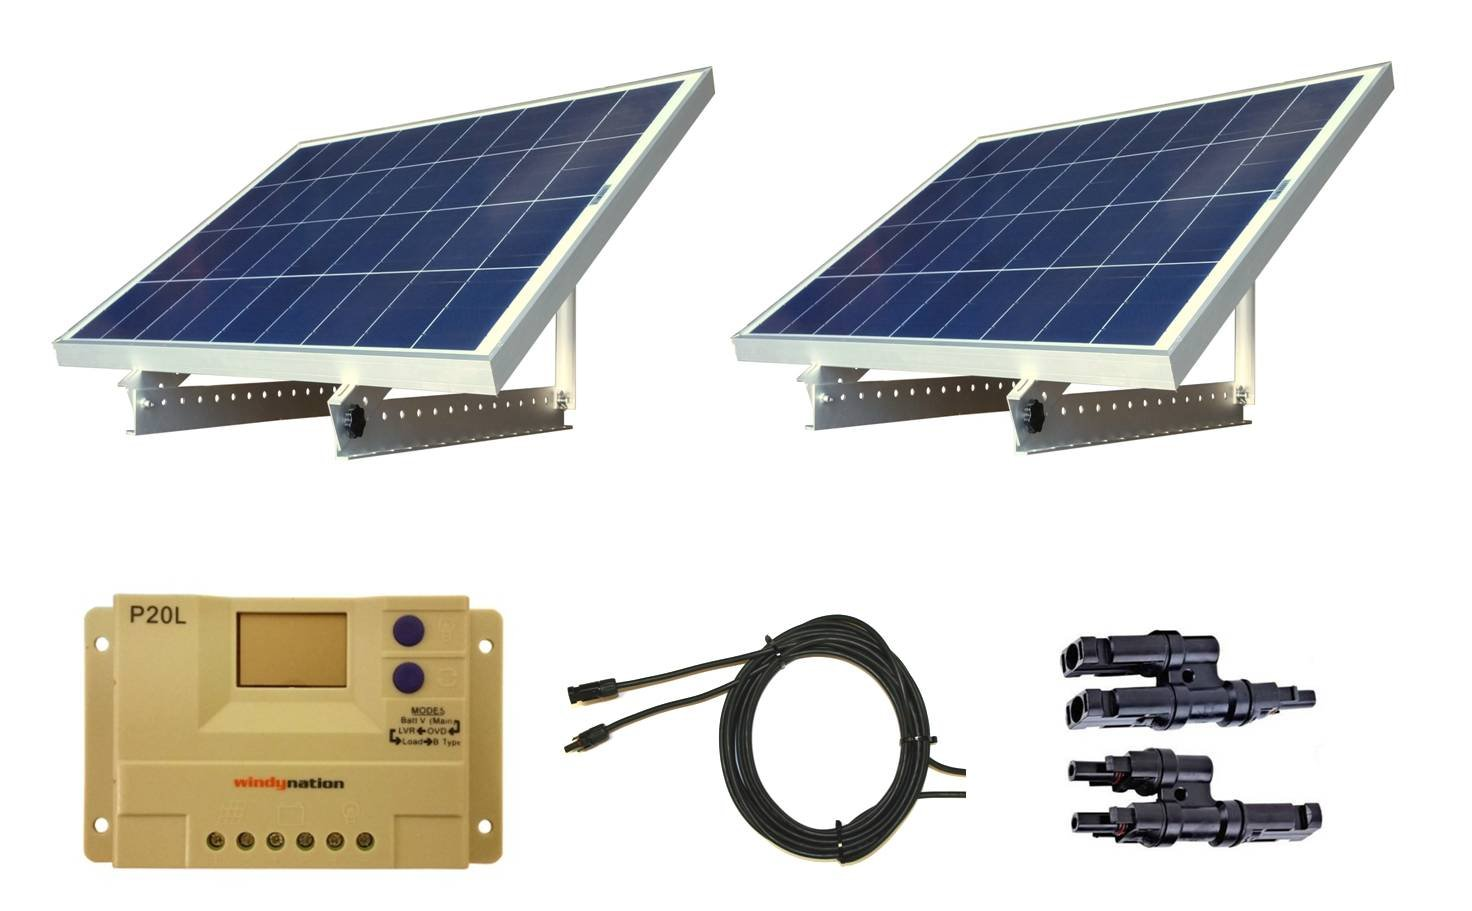 WindyNation 200 Watt 12V or 24V Solar Panel Kit w/Adjustable Solar Mount Rack and LCD Charge Controller RV, Cabin, Off-Grid Battery by WindyNation